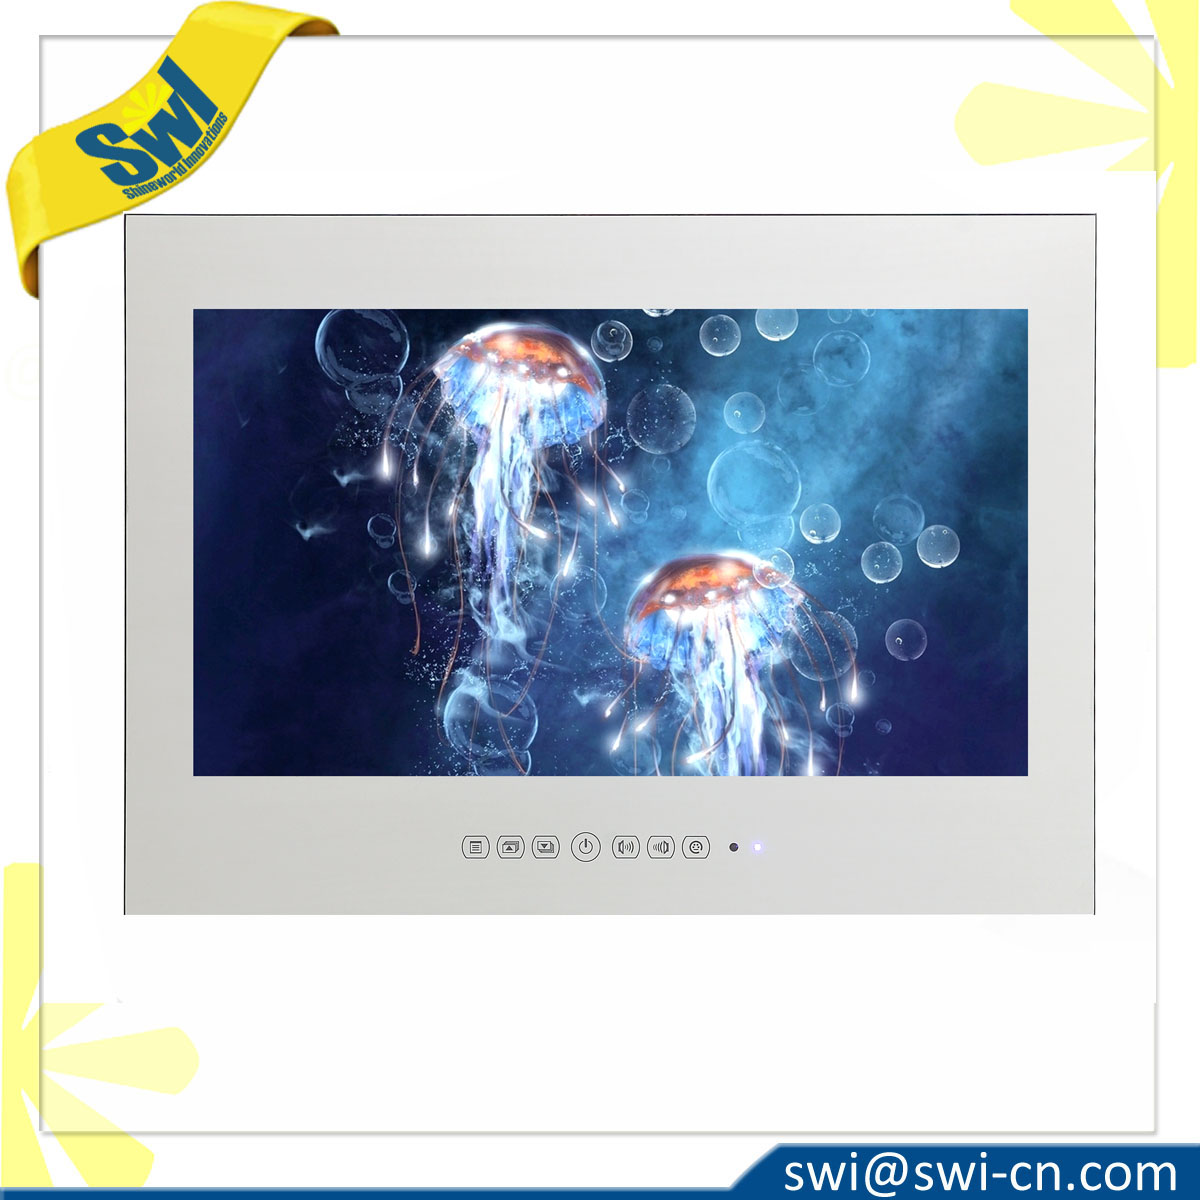 32 Inch LCD Mirror Waterproof TV